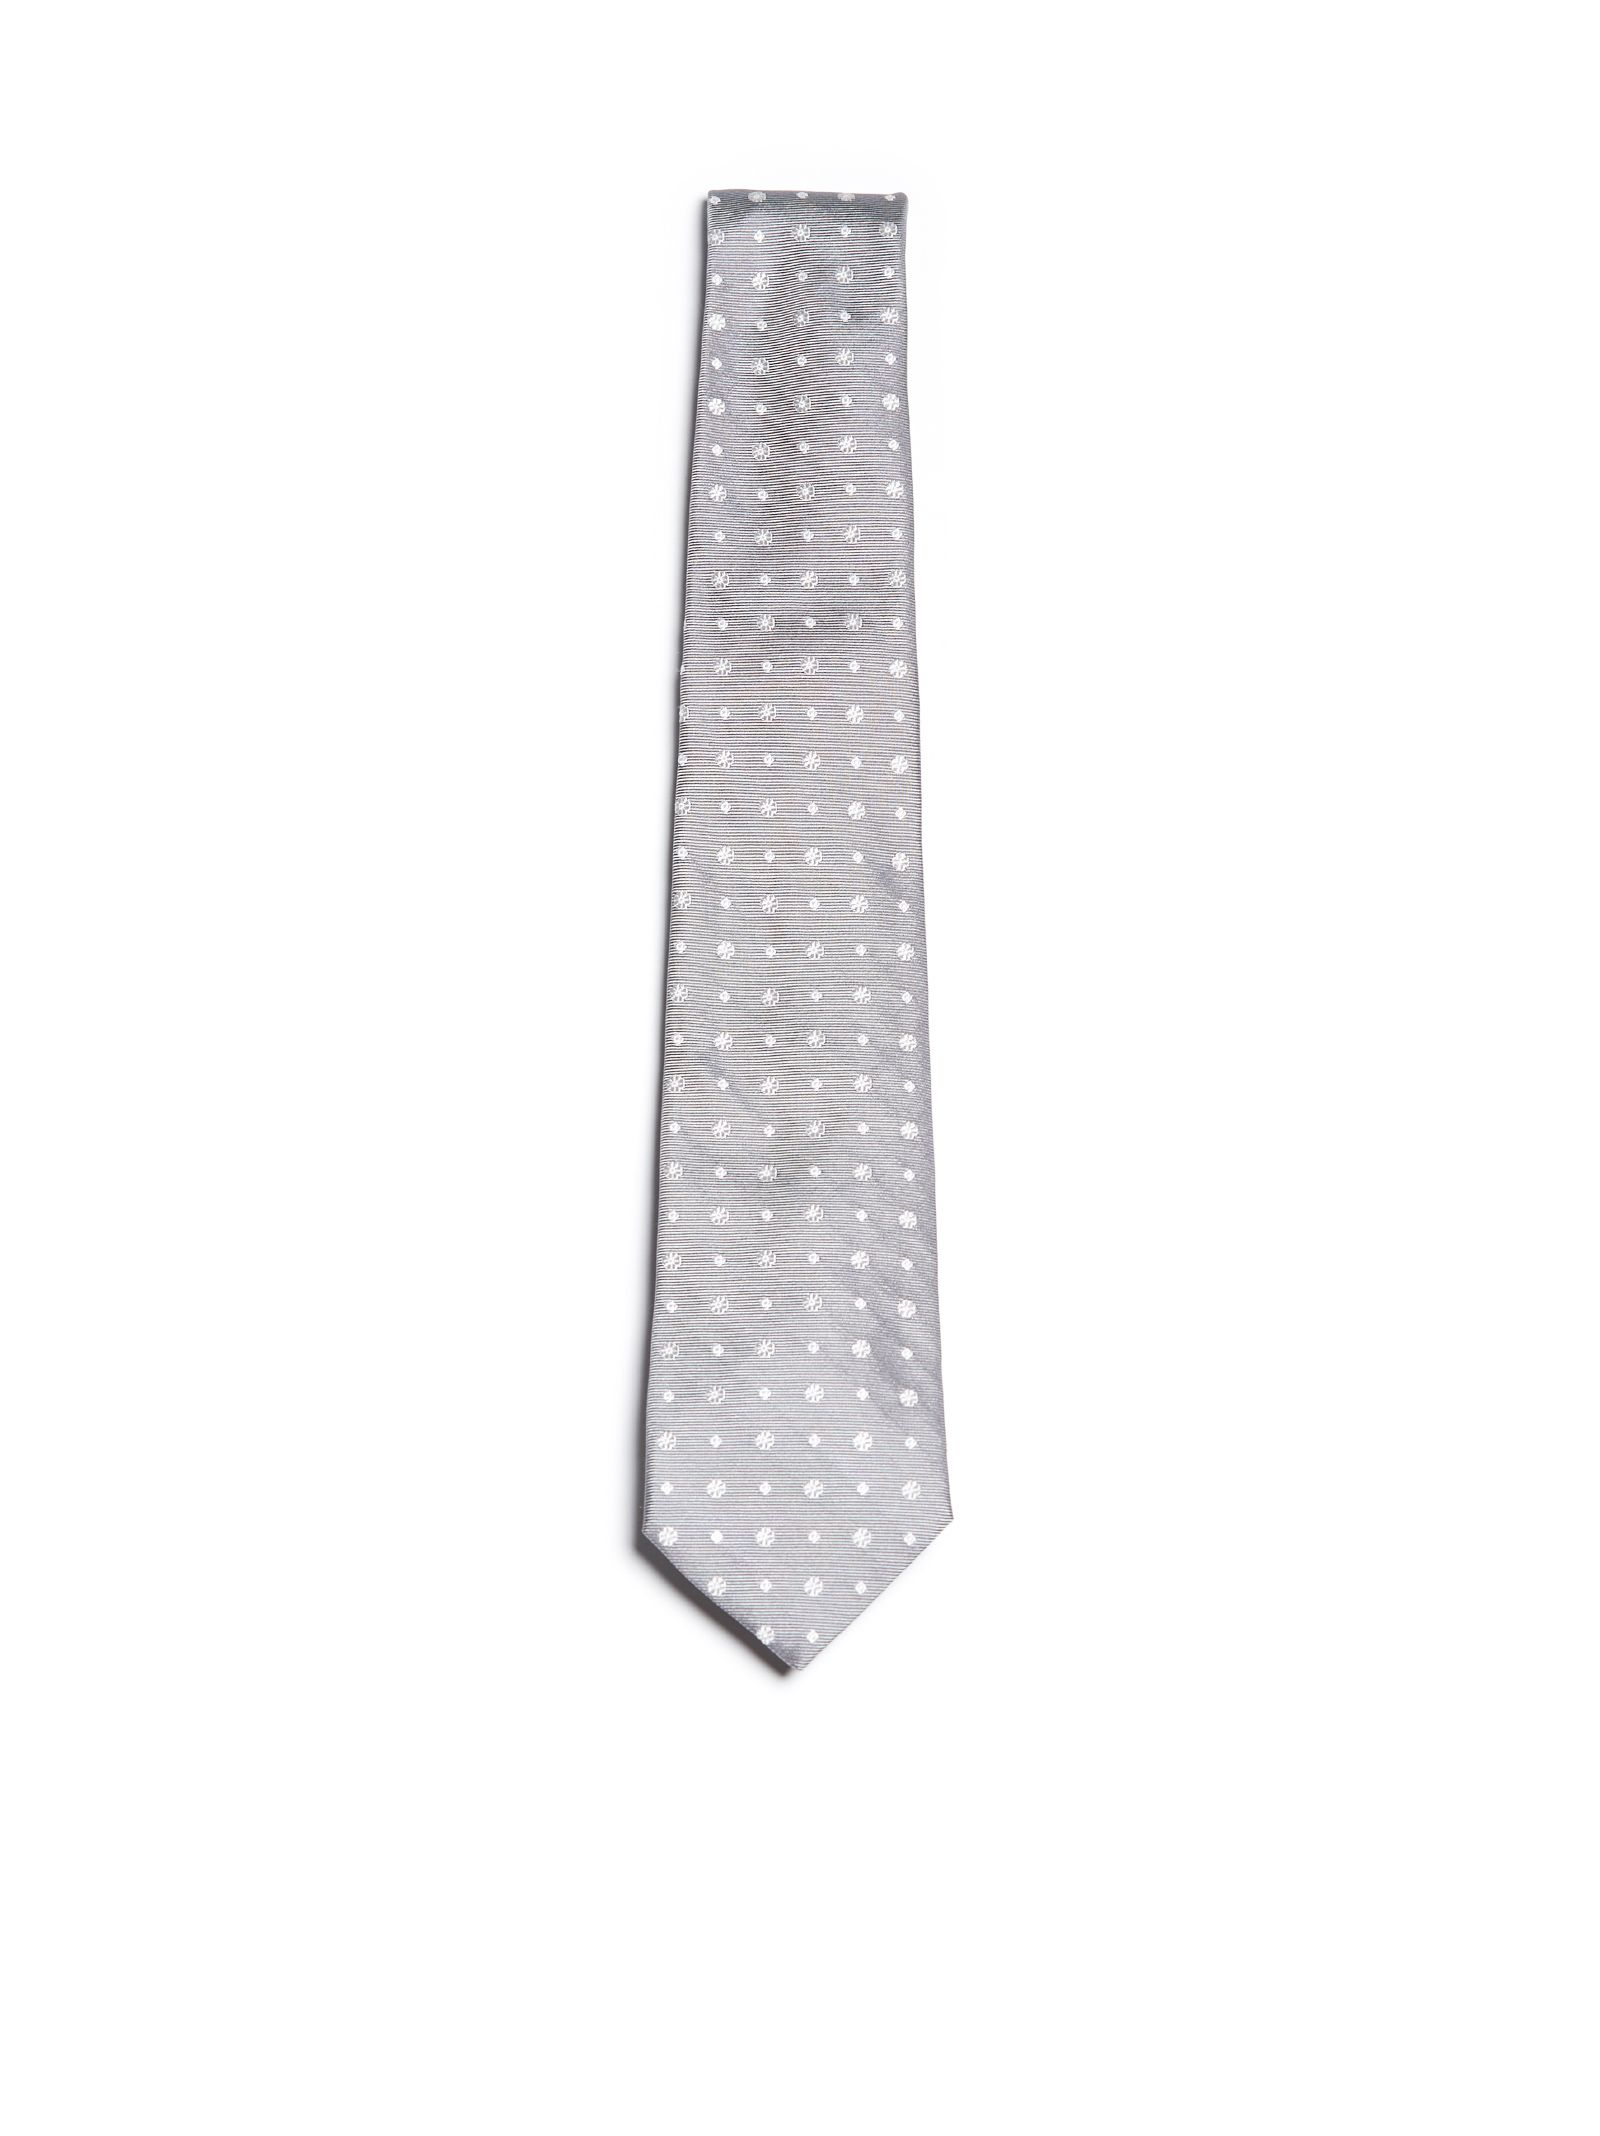 Tagliatore Embroidered Necktie